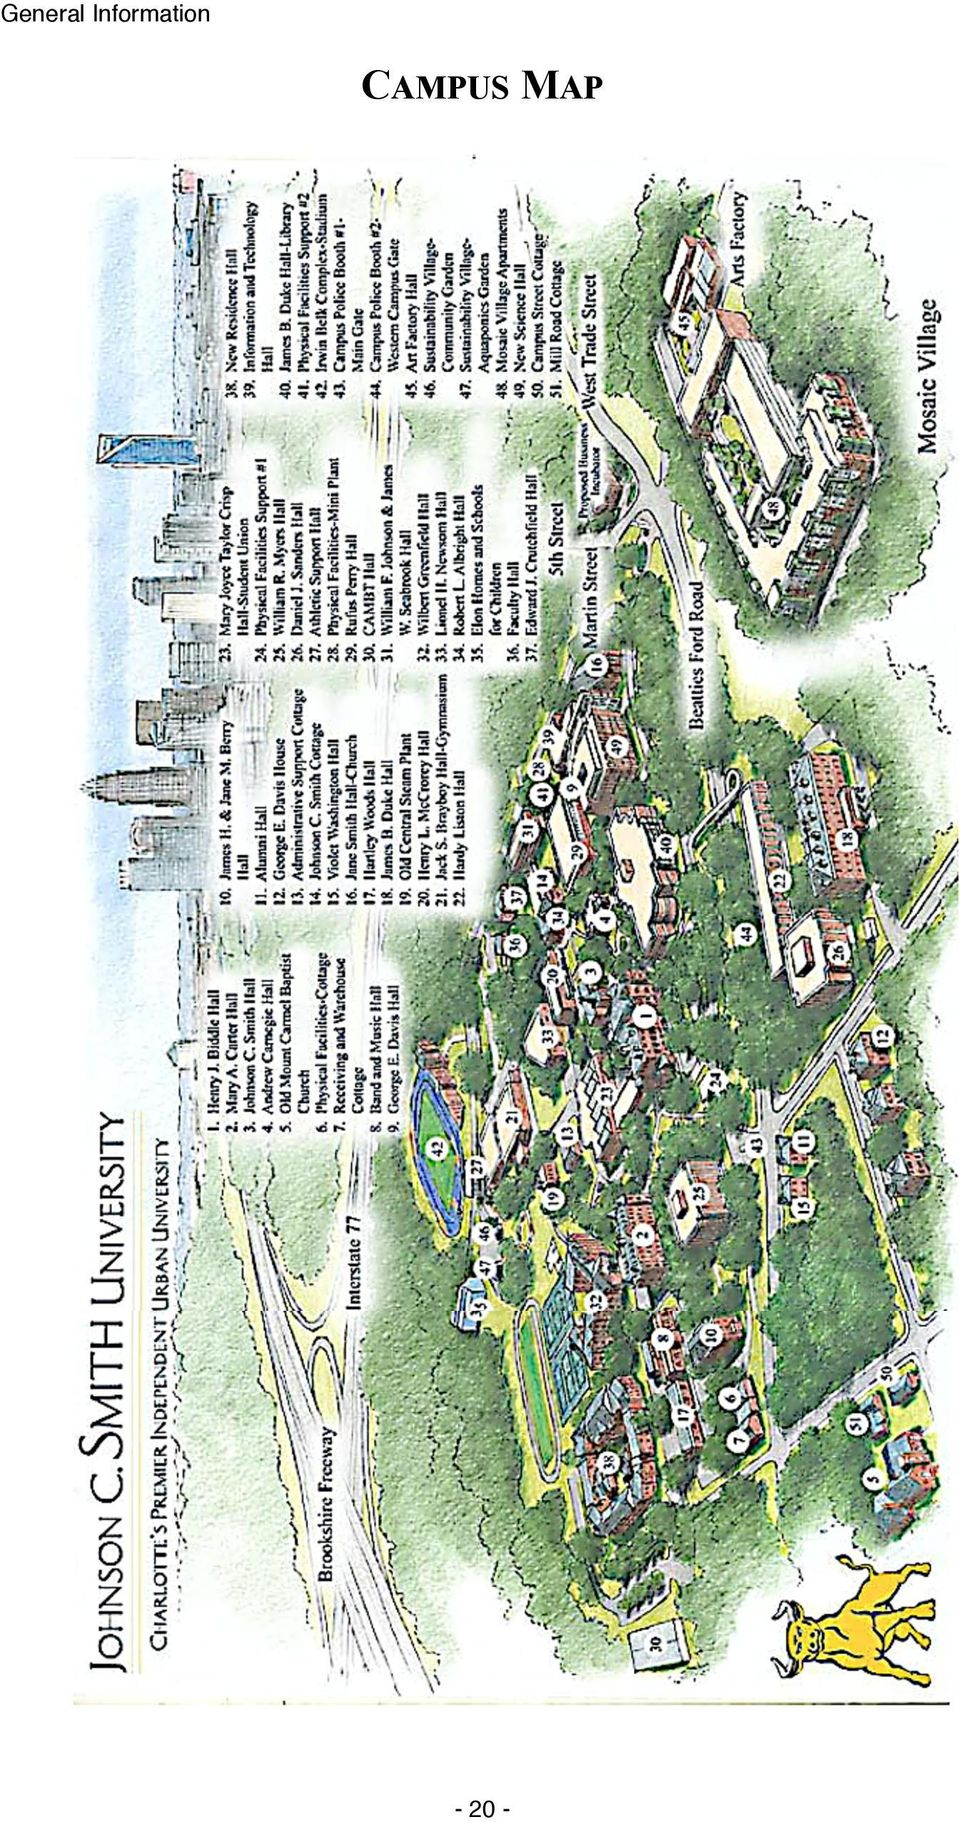 Jcsu Campus Map.Johnson C Smith University Is Accredited By Pdf